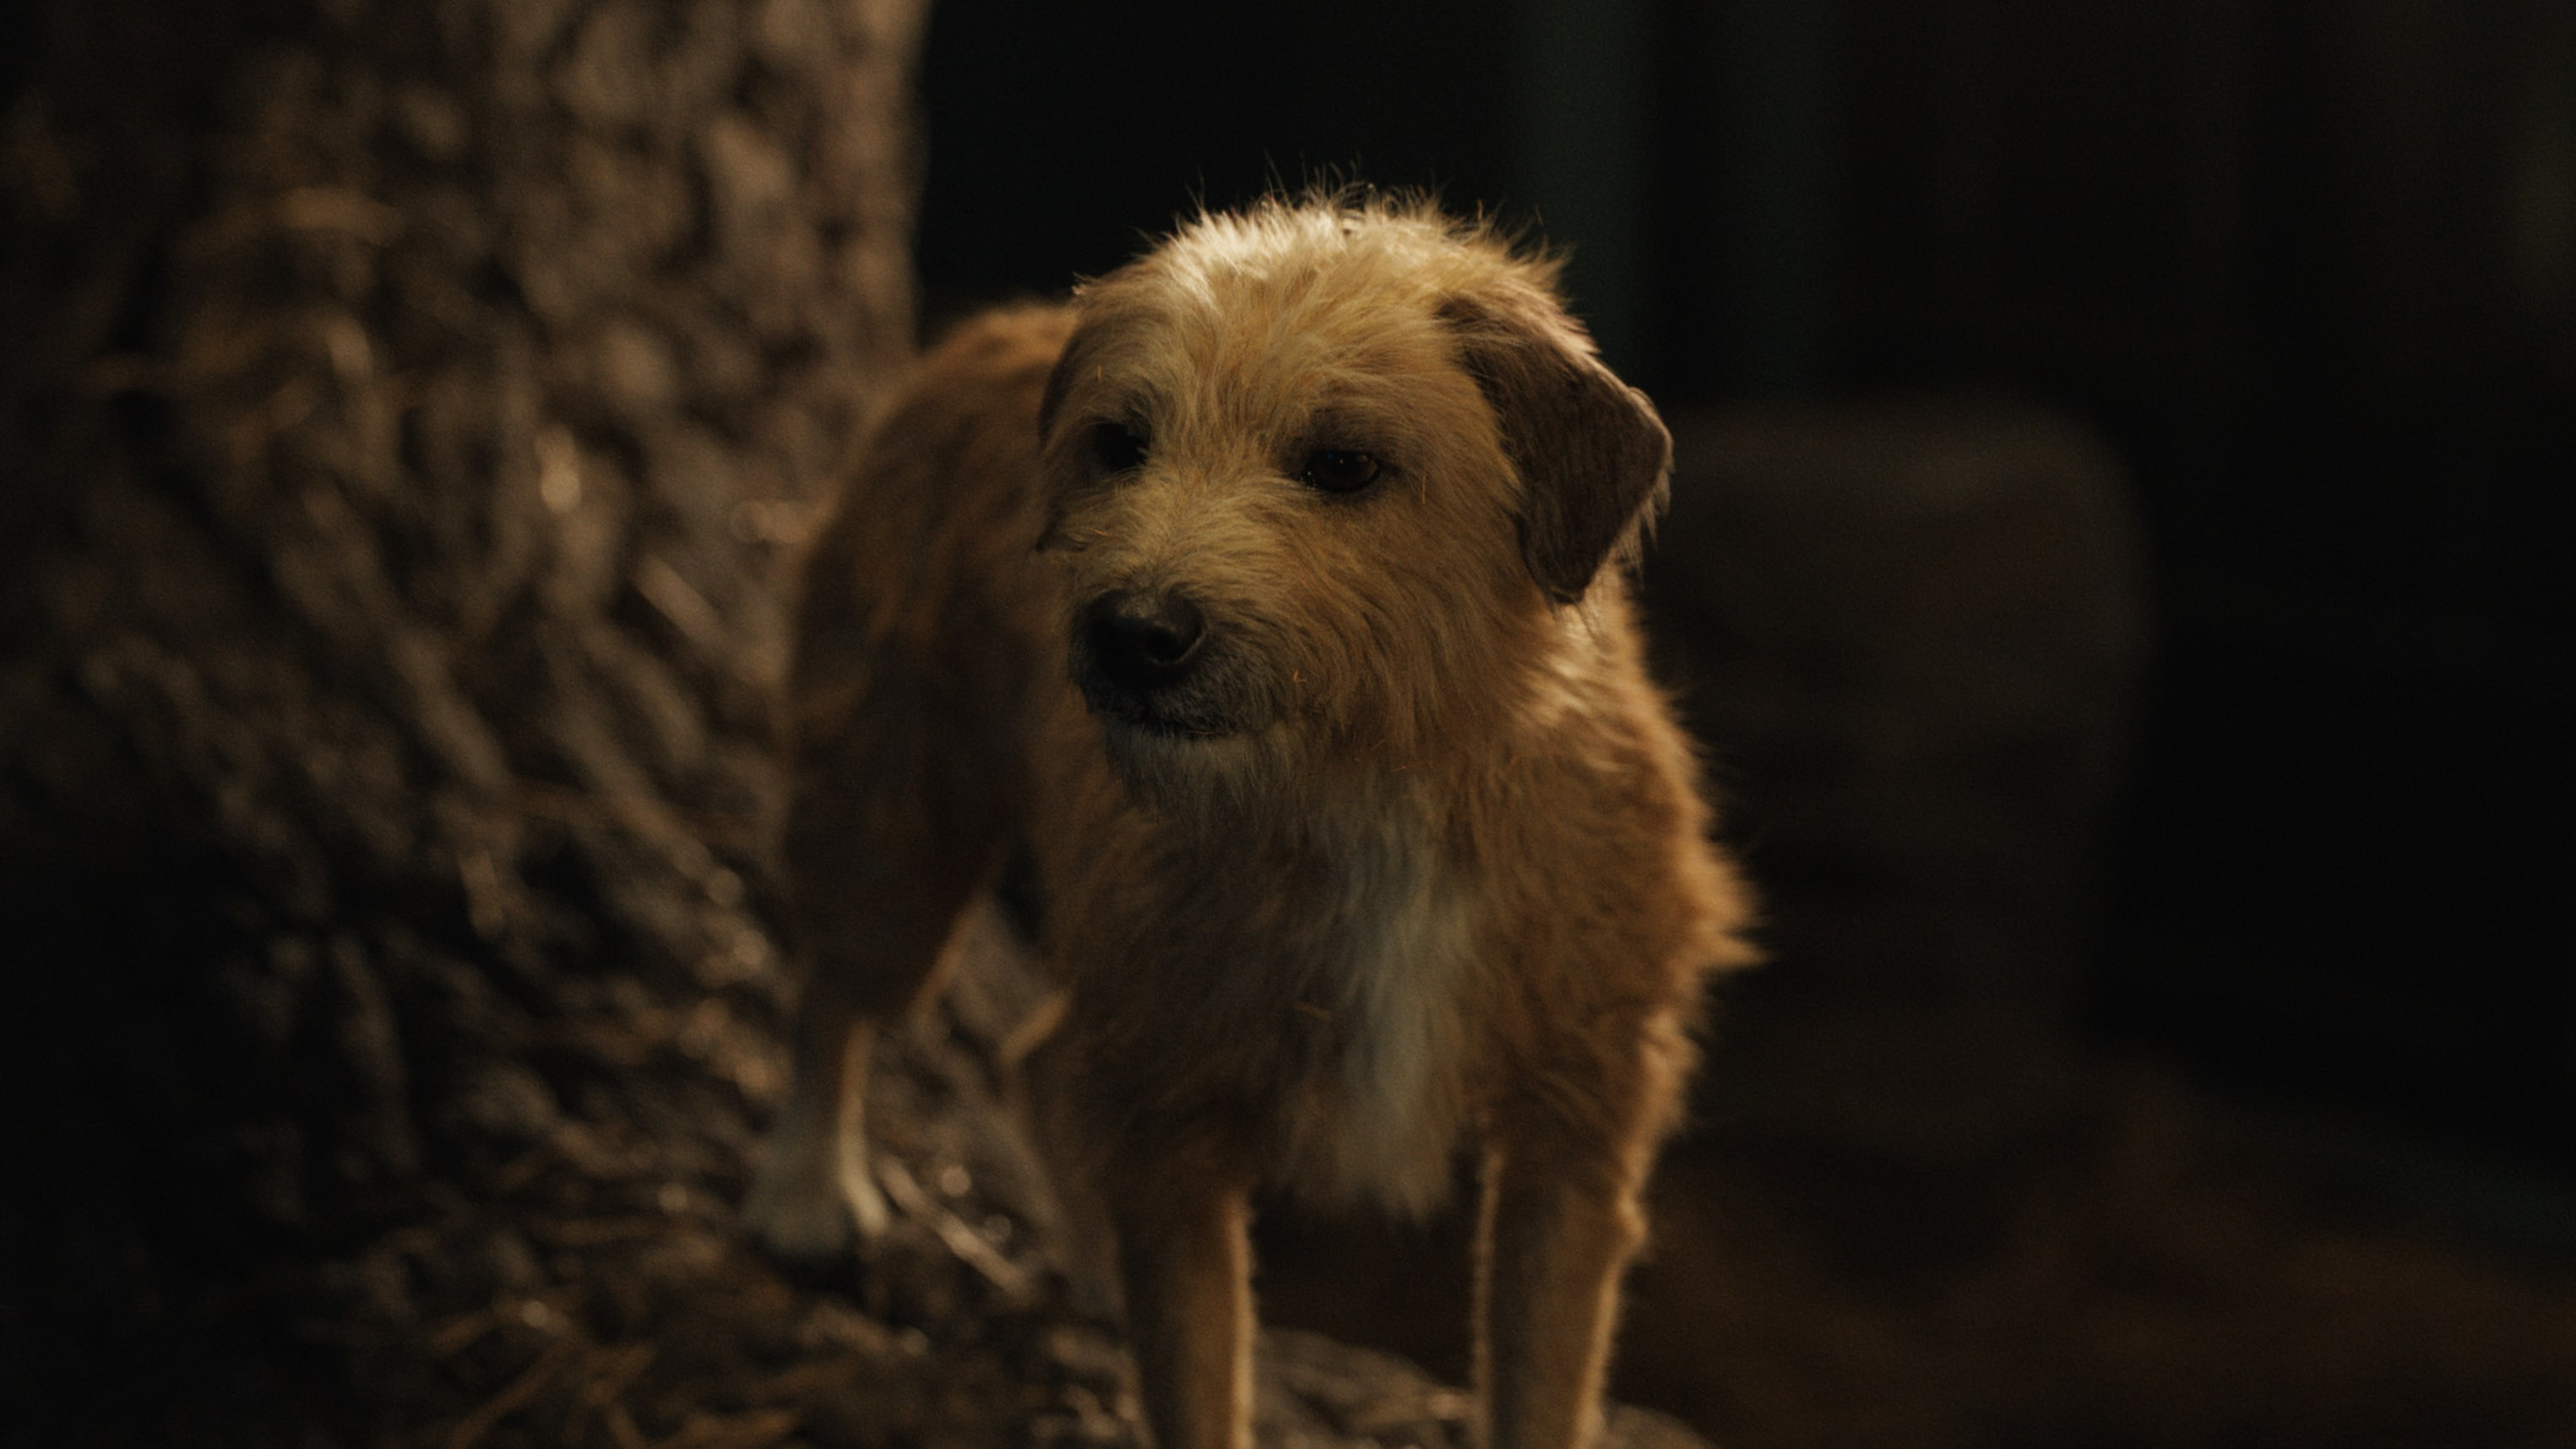 Bob the dog (voiced by Danny DeVito) in Disney's THE ONE AND ONLY IVAN, based on the award-winning book by Katherine Applegate and directed by Thea Sharrock. Photo courtesy of Disney. © 2020 Disney Enterprises, Inc. All Rights Reserved.